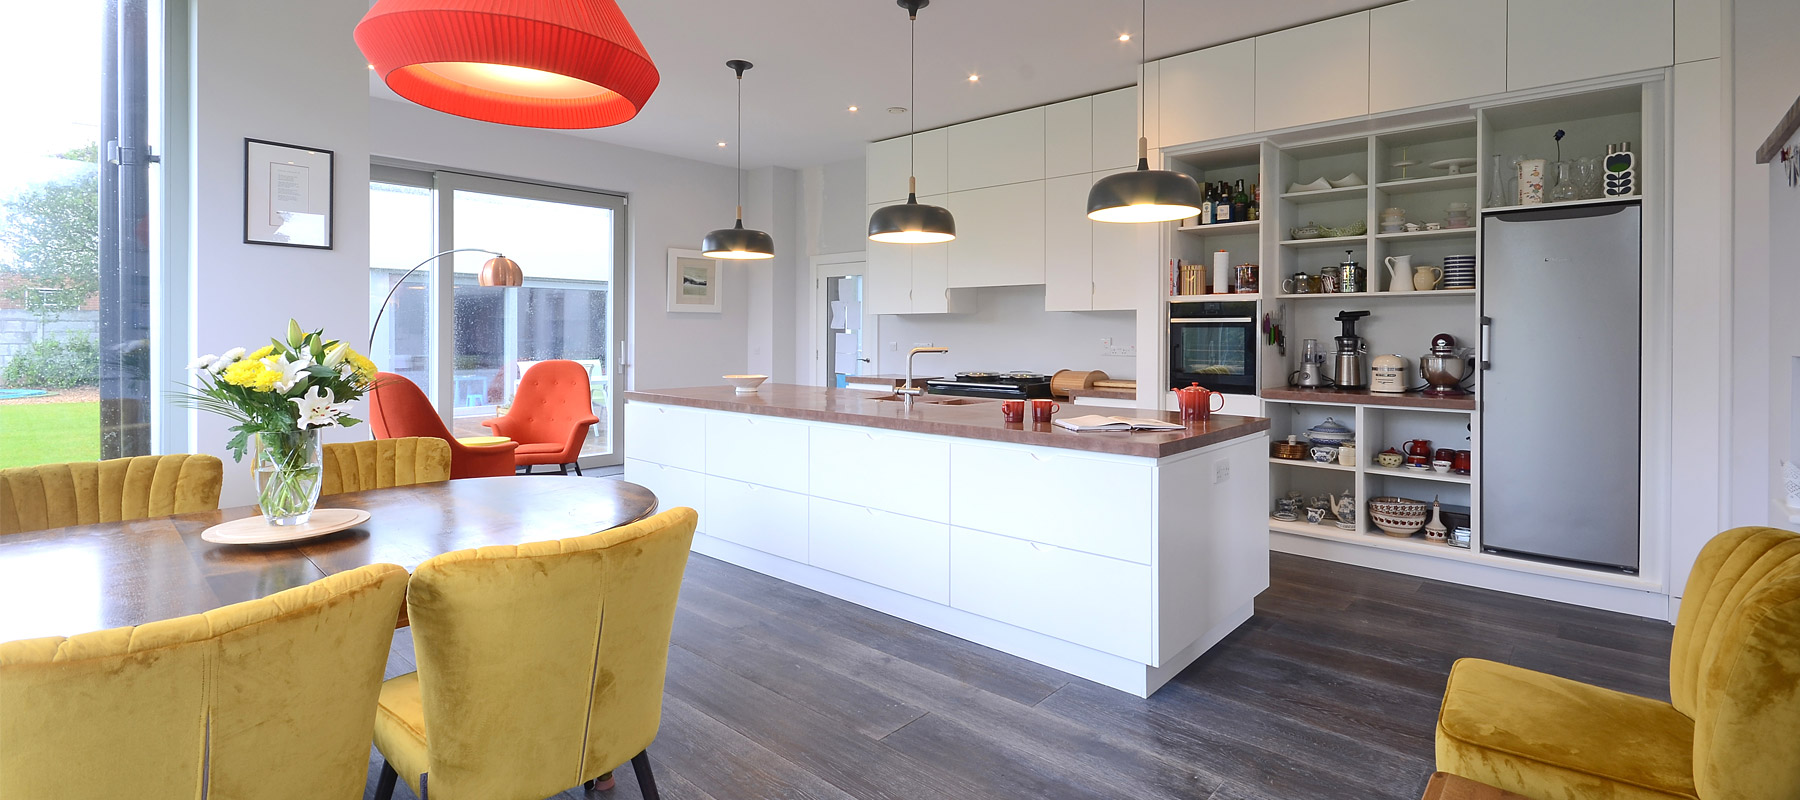 Contemporary kitchen in Galway, County Galway